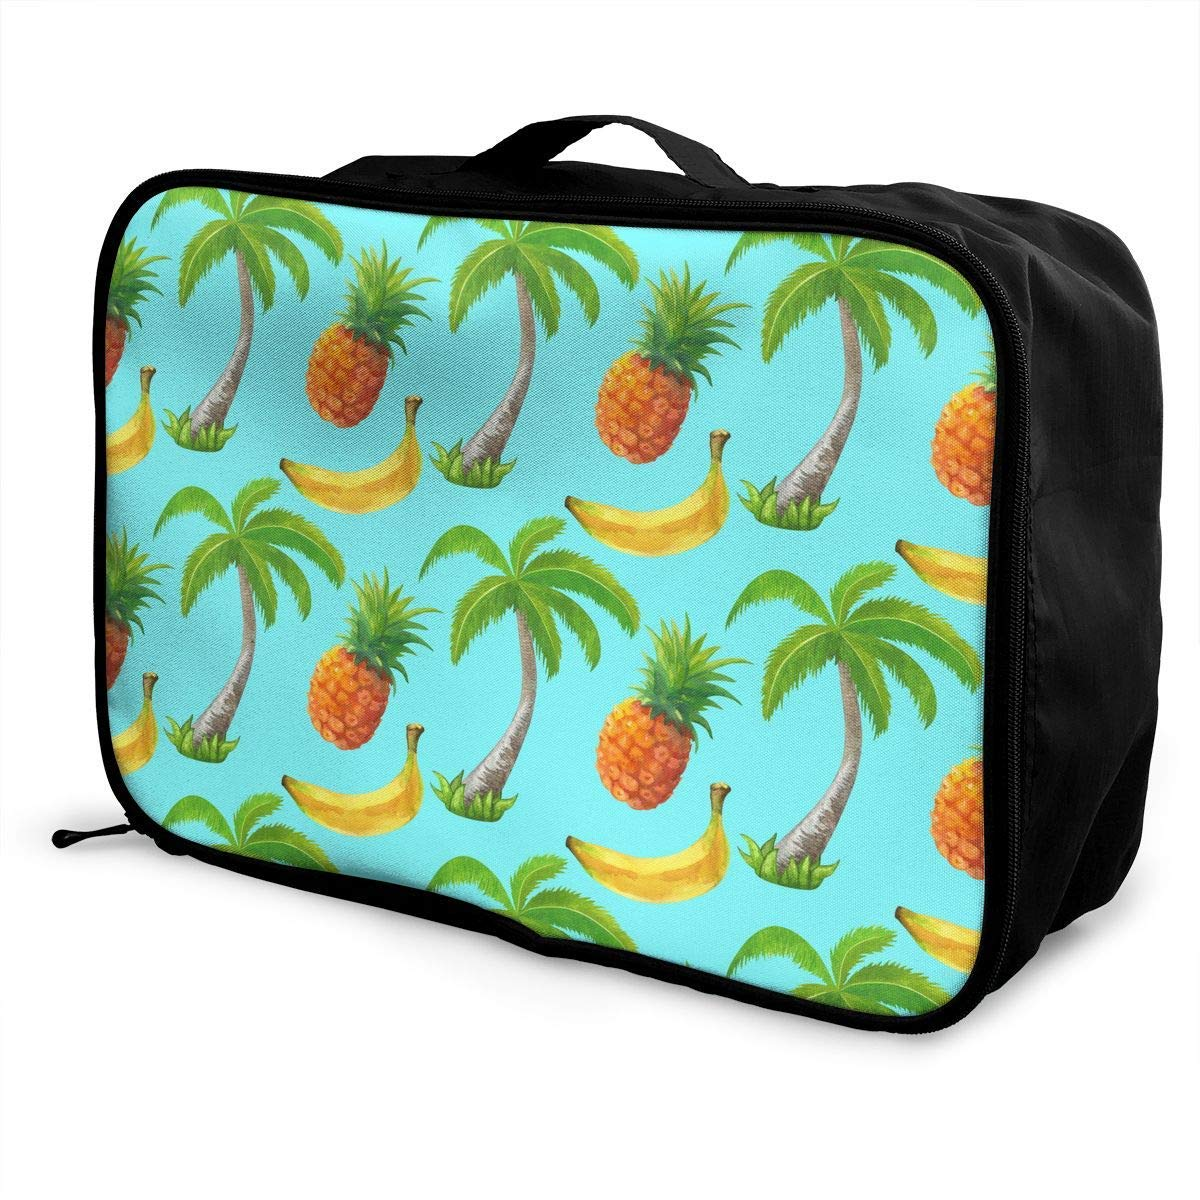 JTRVW Travel Luggage Trolley Bag Portable Lightweight Suitcases Duffle Tote Bag Handbag Coconut Palm Trees And Fruits Pattern